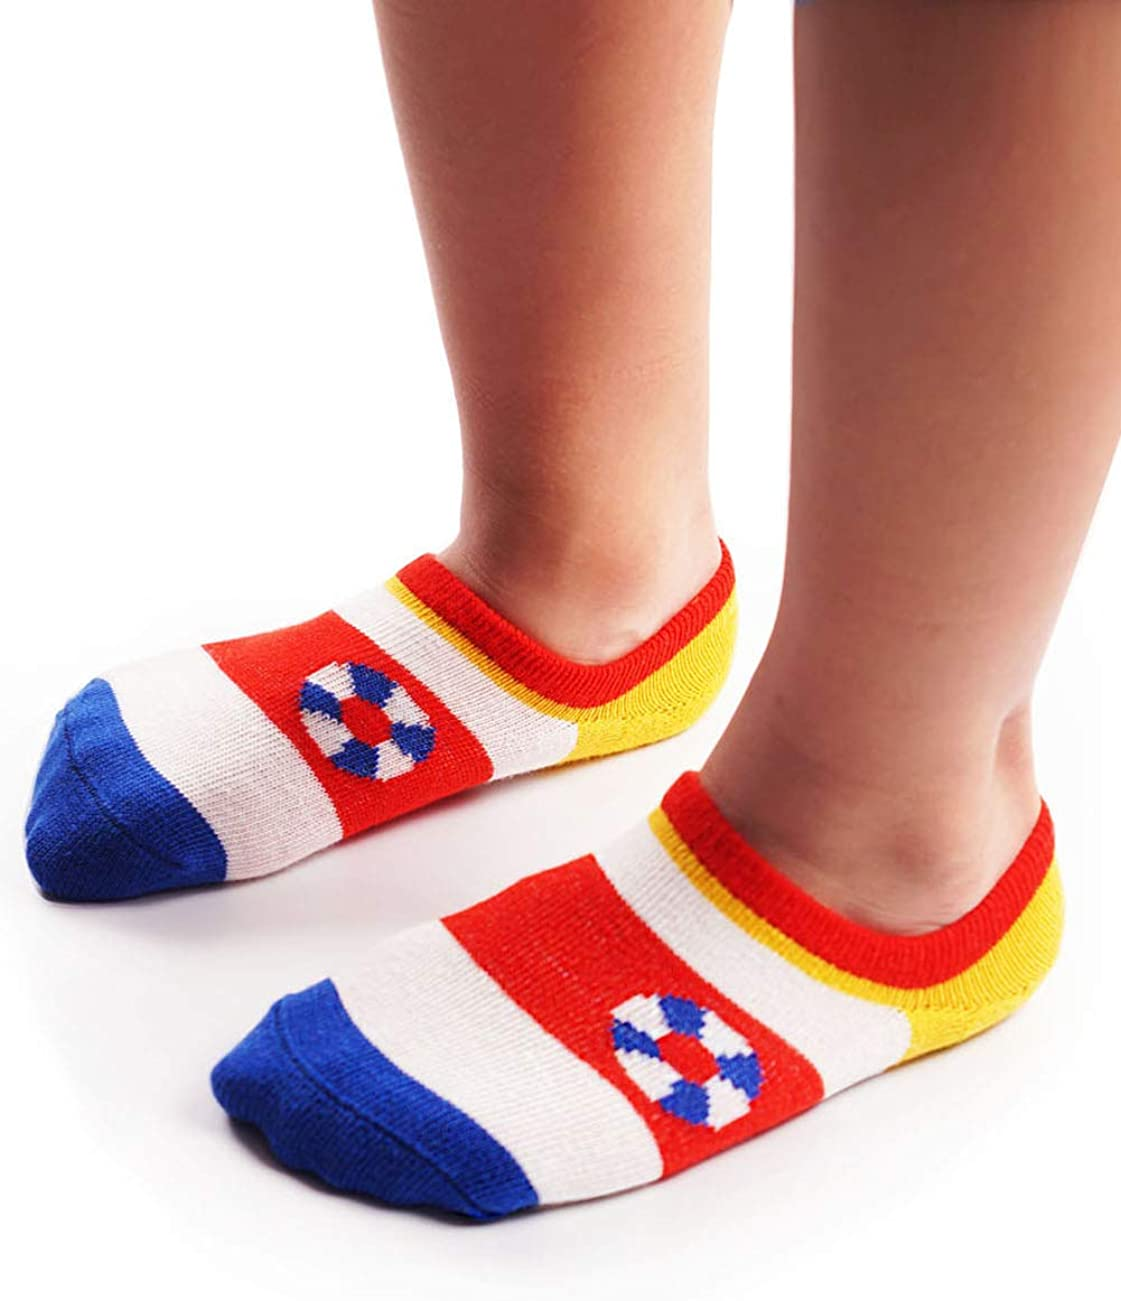 Age 1 to 3 Boys Kids 3 Pairs Cotton Rich Non-slip Colourful Striped Ankle Calf Socks Ankle Socks Non-slip